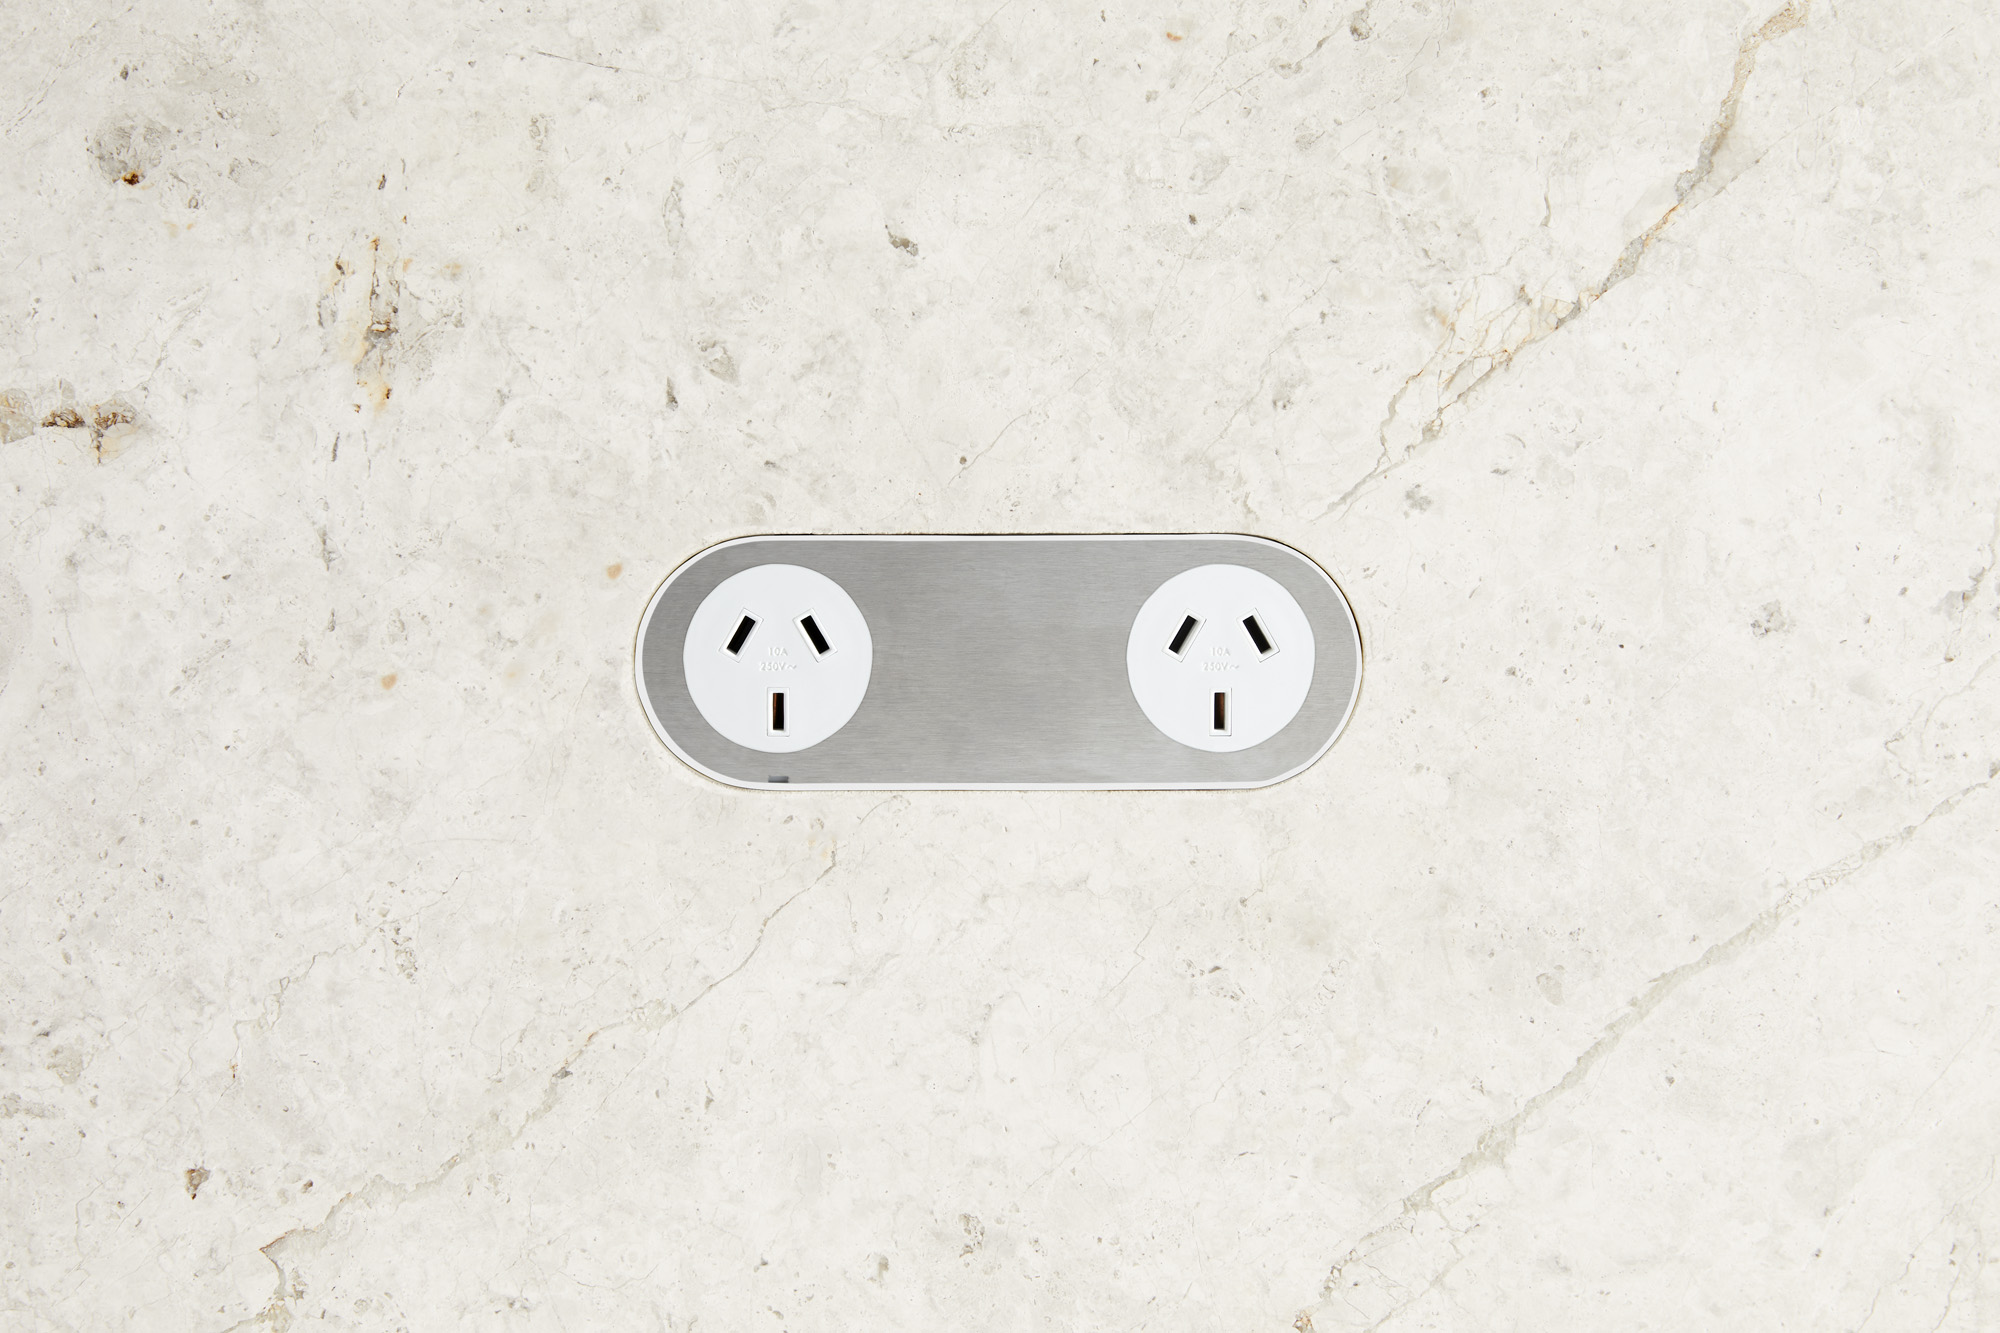 Double_Outlet_Stainless_Silver_White_Outlet_Stone_Light.jpg